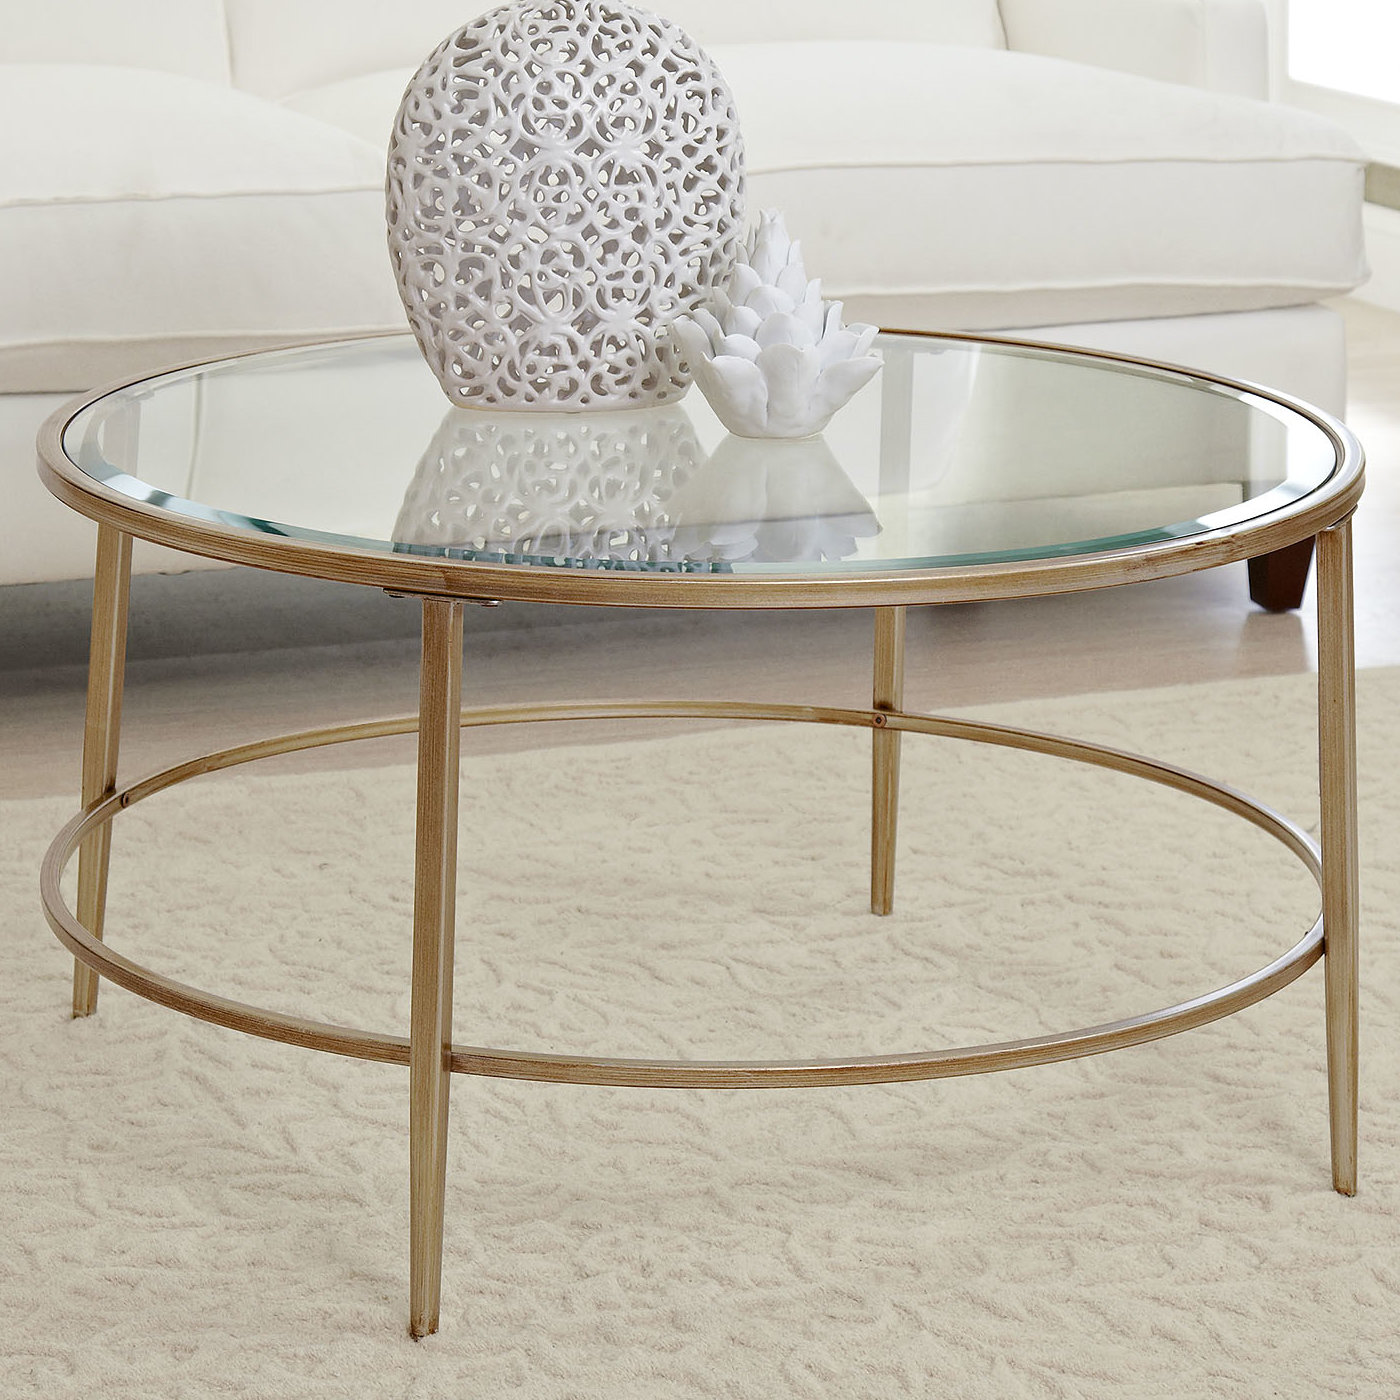 brushed gold coffee table prairie small oval accent narrow cabinet with doors rustic mirage mirrored white childrens desk pier inch deep console wood reading lamp dale tiffany